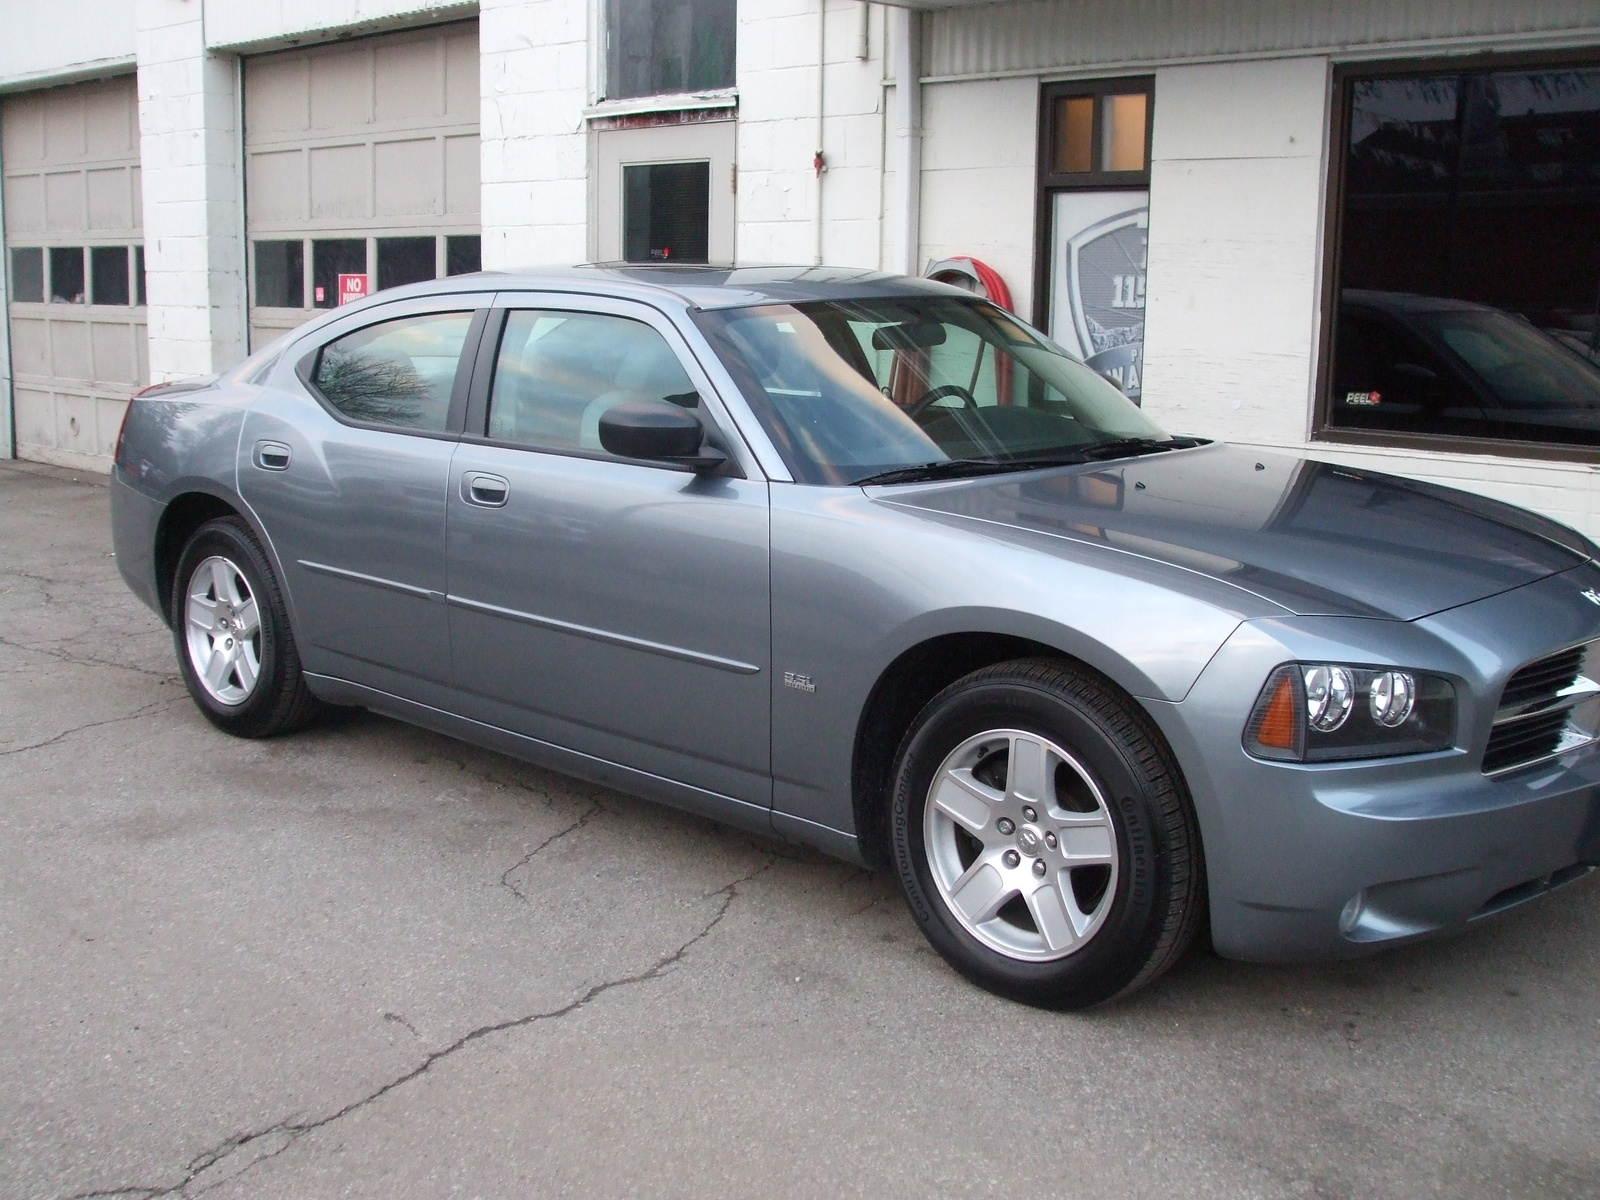 2007 dodge charger other pictures cargurus. Black Bedroom Furniture Sets. Home Design Ideas